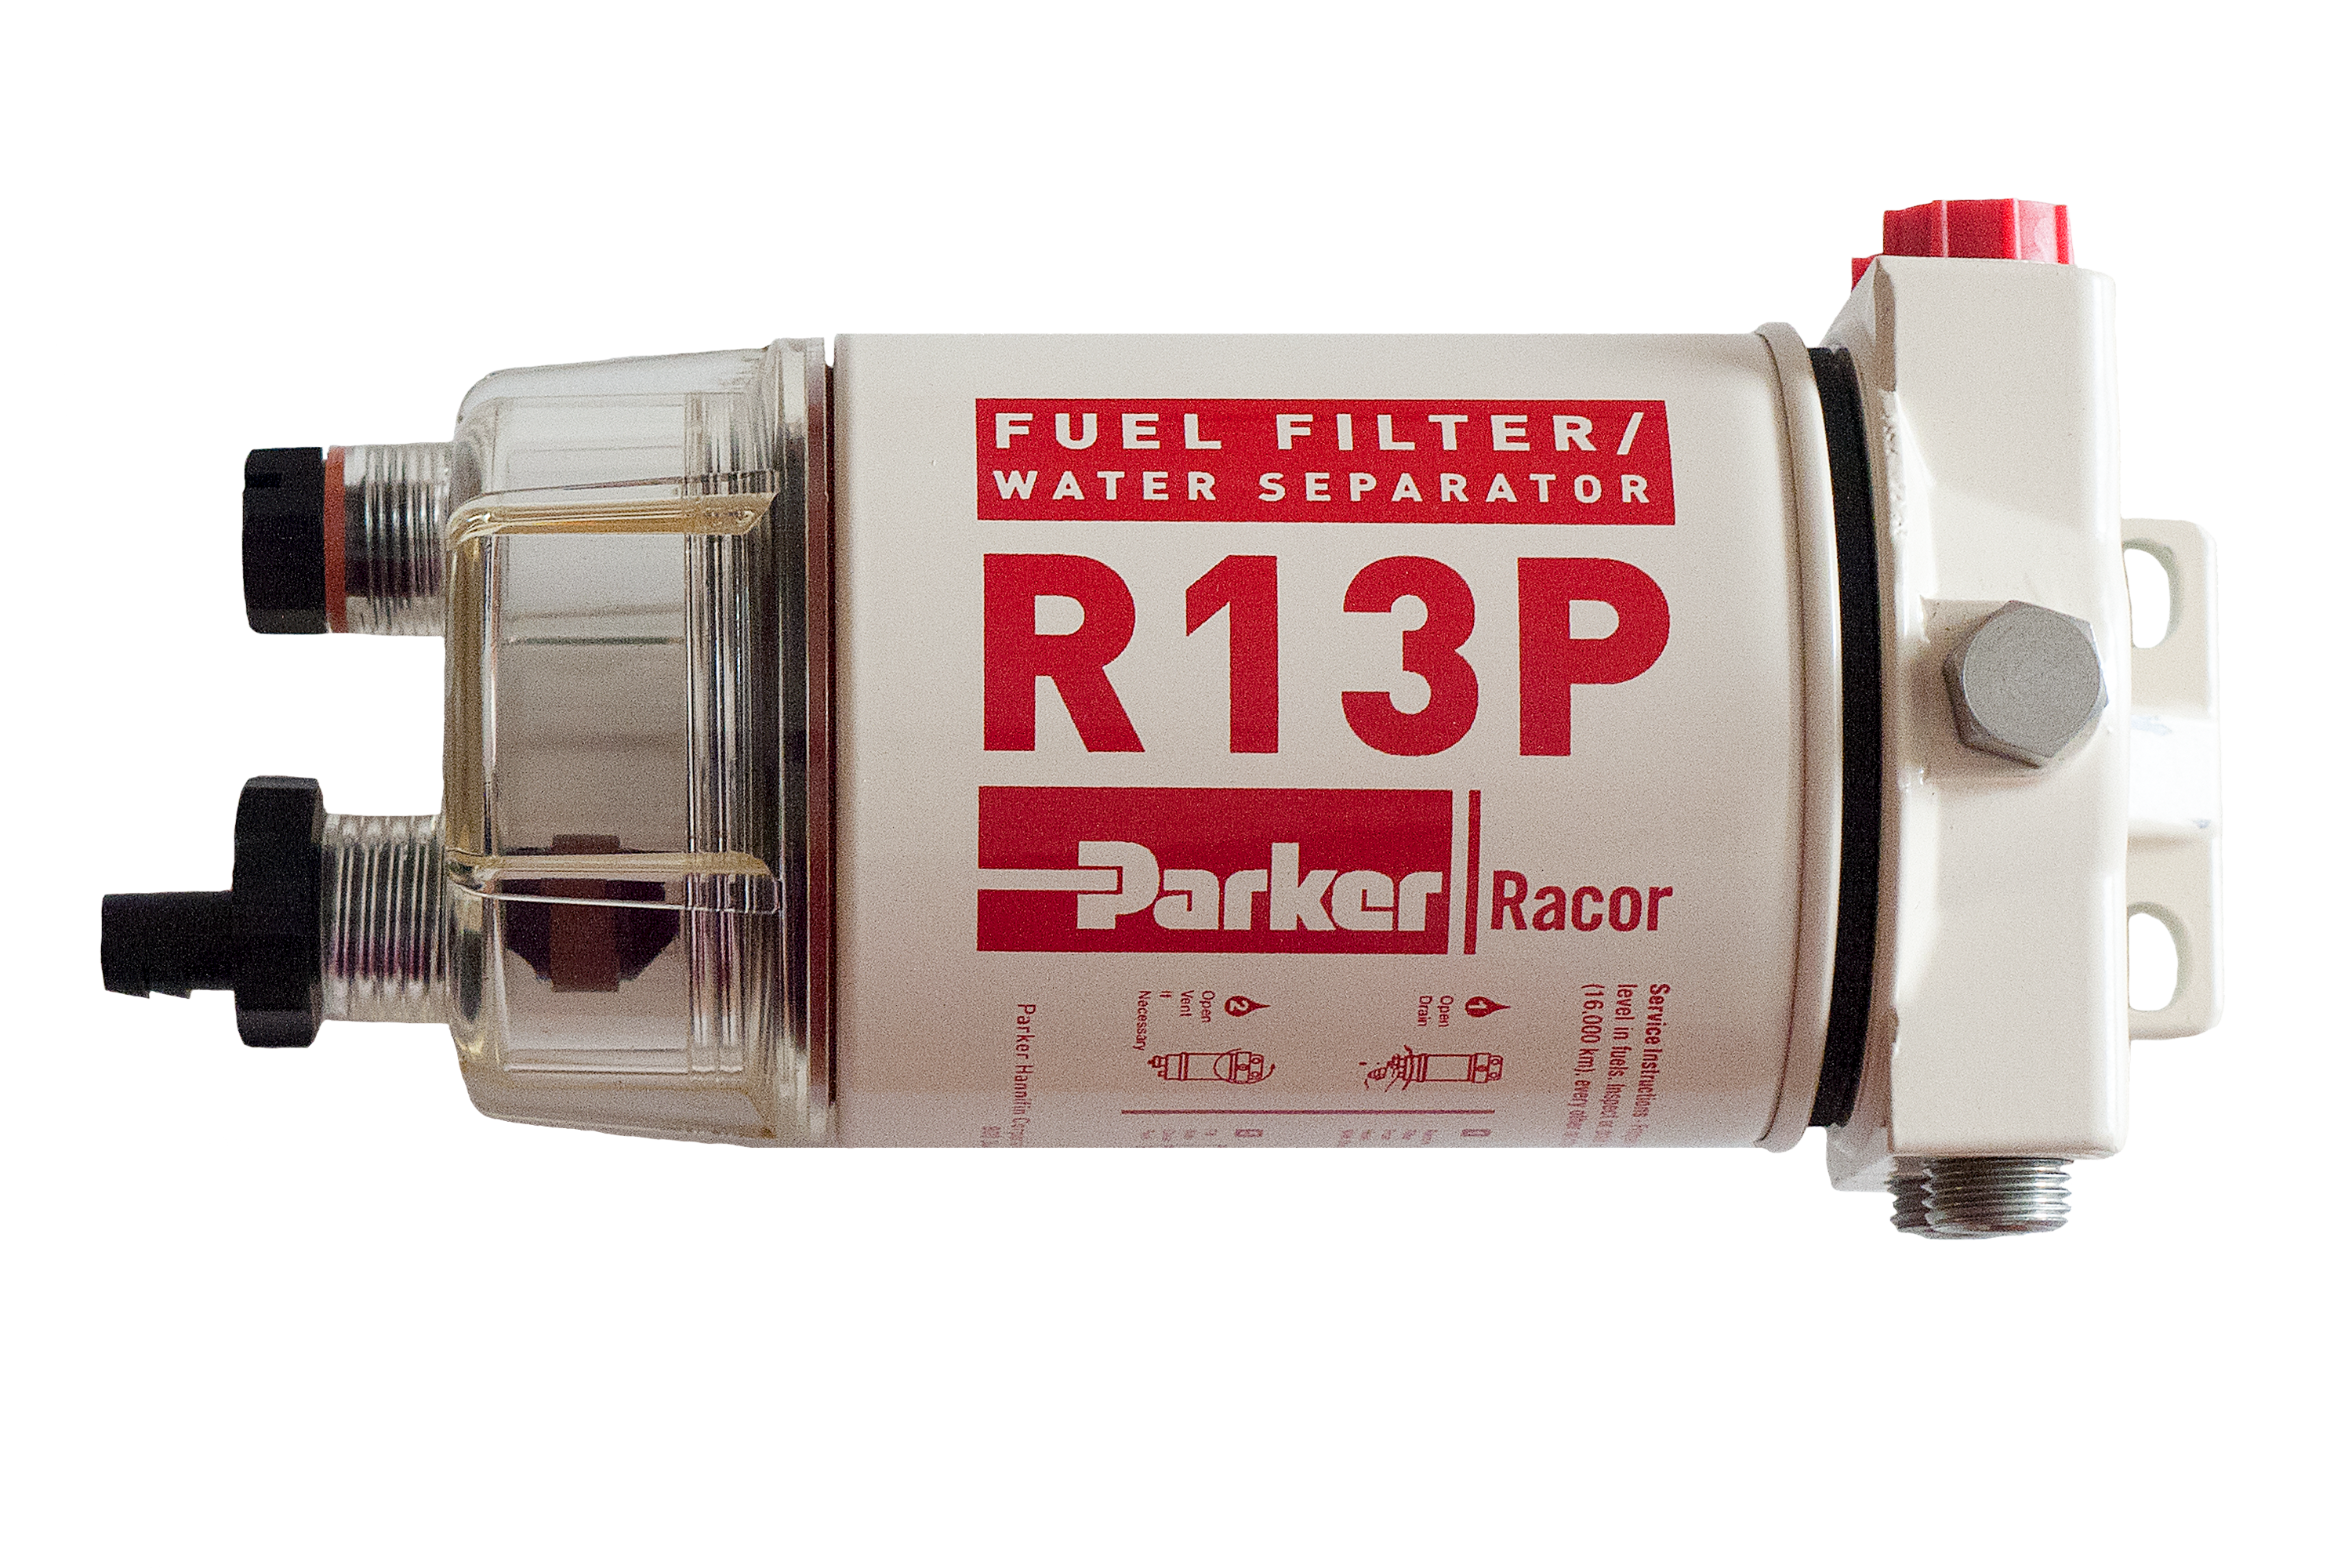 120BP Racor Fuel Filter/Water Separator